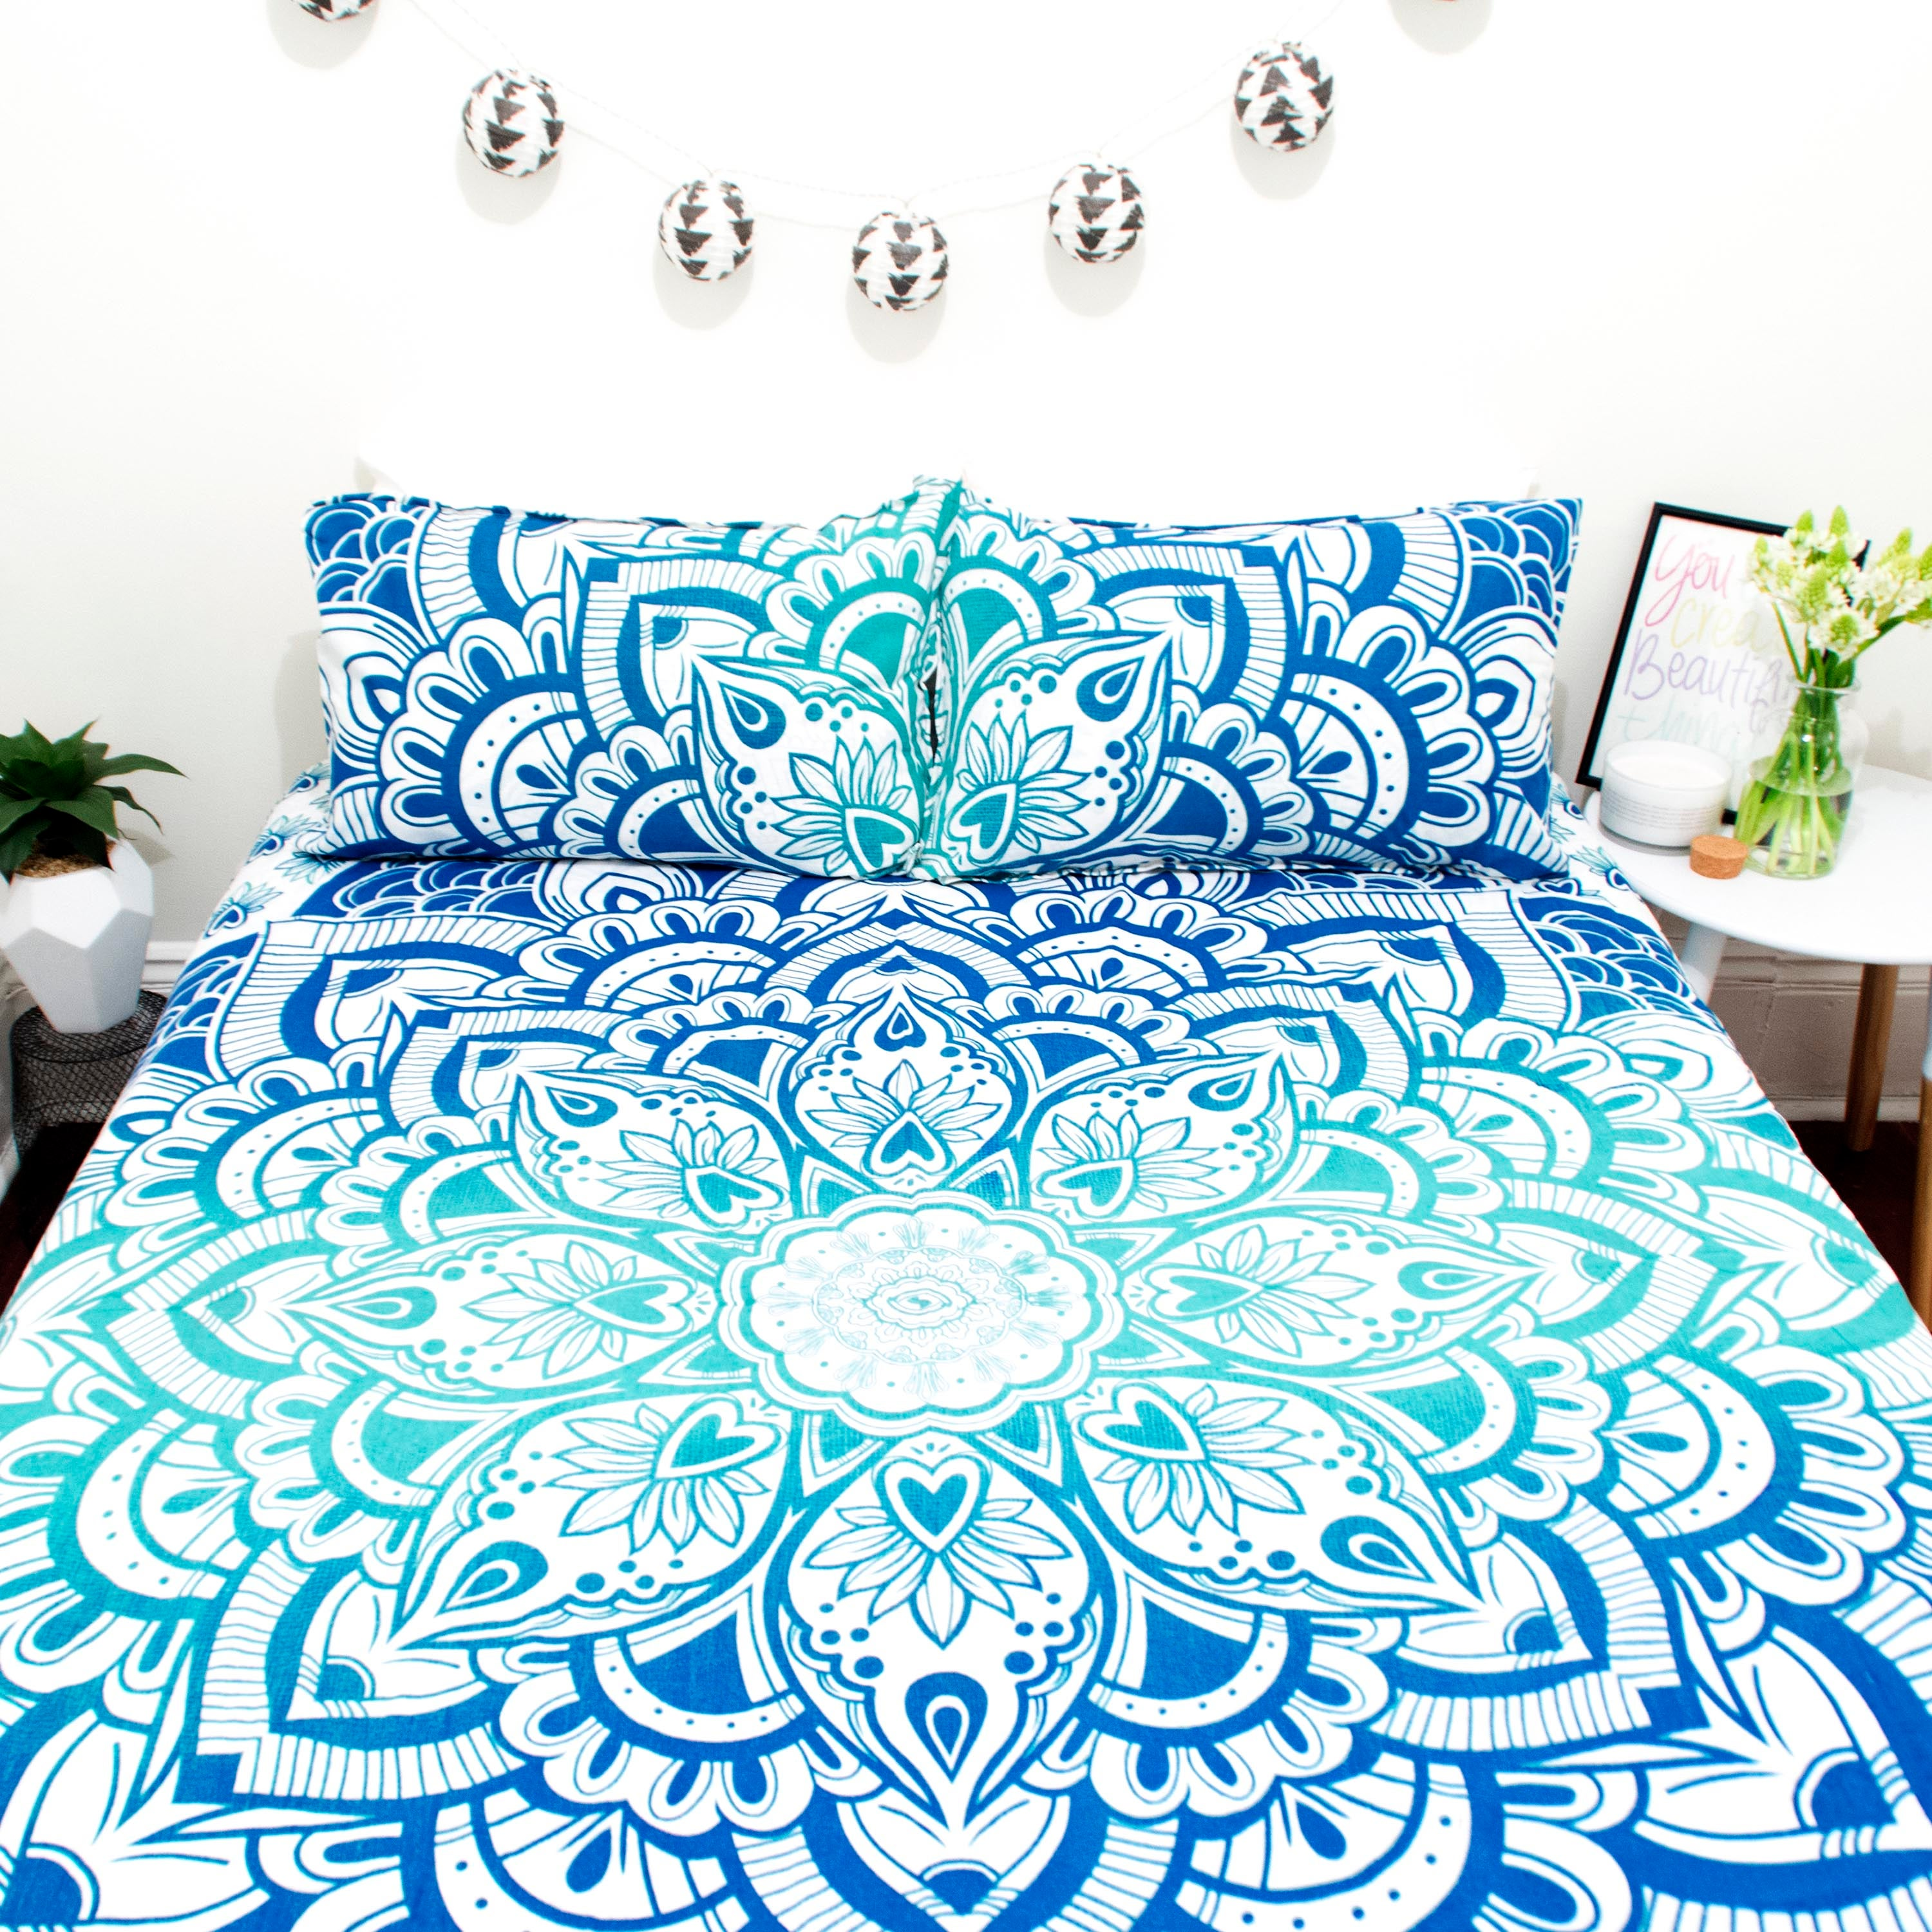 Boho Bedding Australia Blue Ombre Lotus Doona Set Marked Down From 110 Now